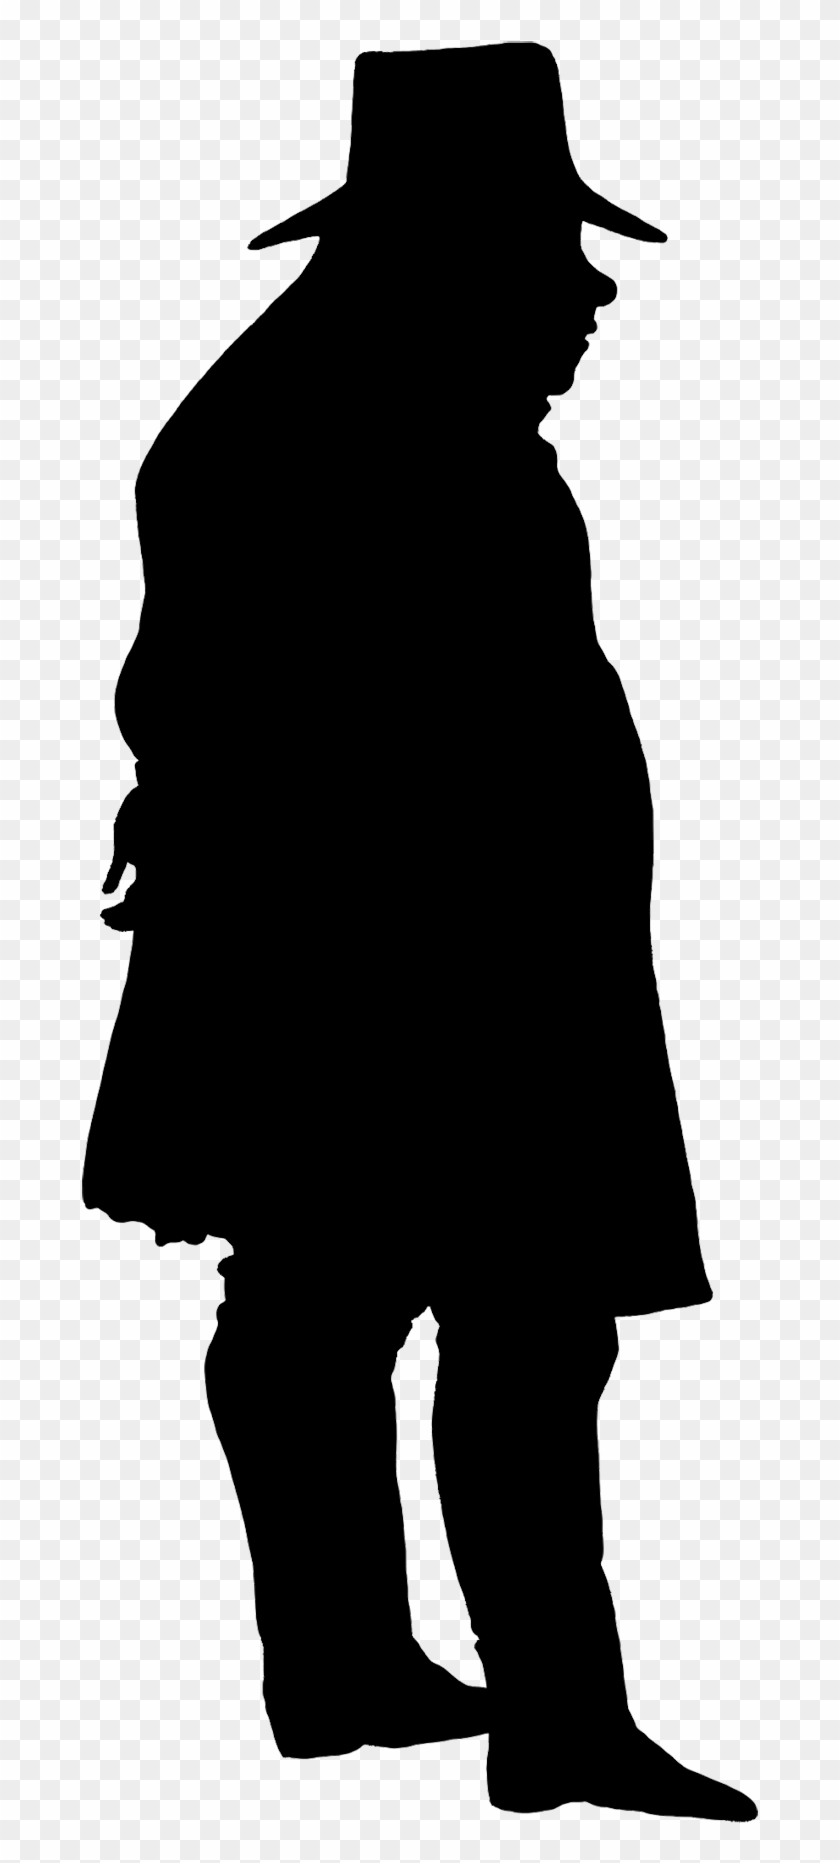 Gentleman Victorian Silhouette Clipart - Man Silhouette Png #150172